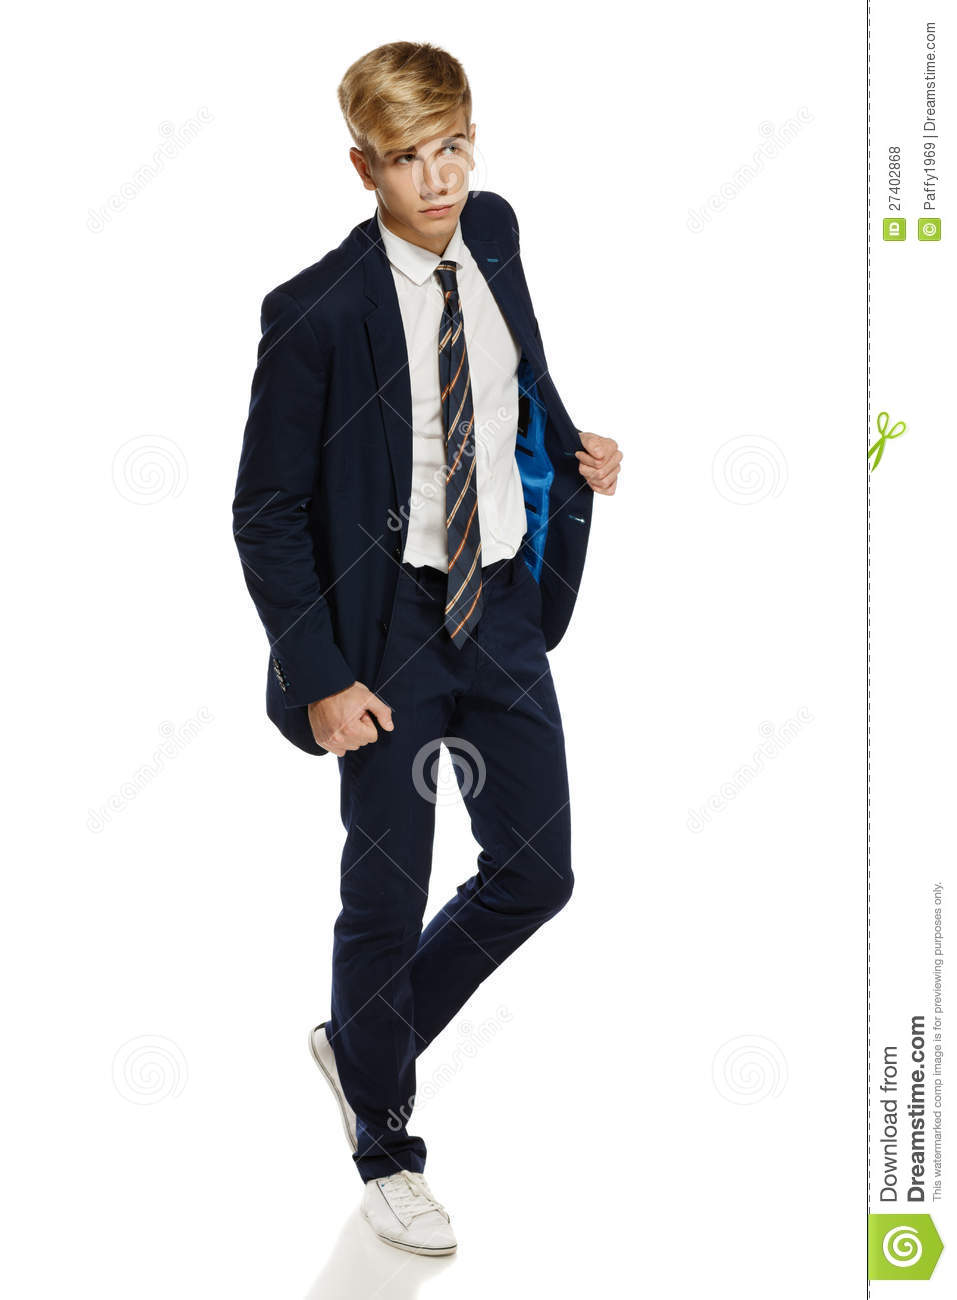 Stylish Young Man In Suit Walking Royalty Free Stock